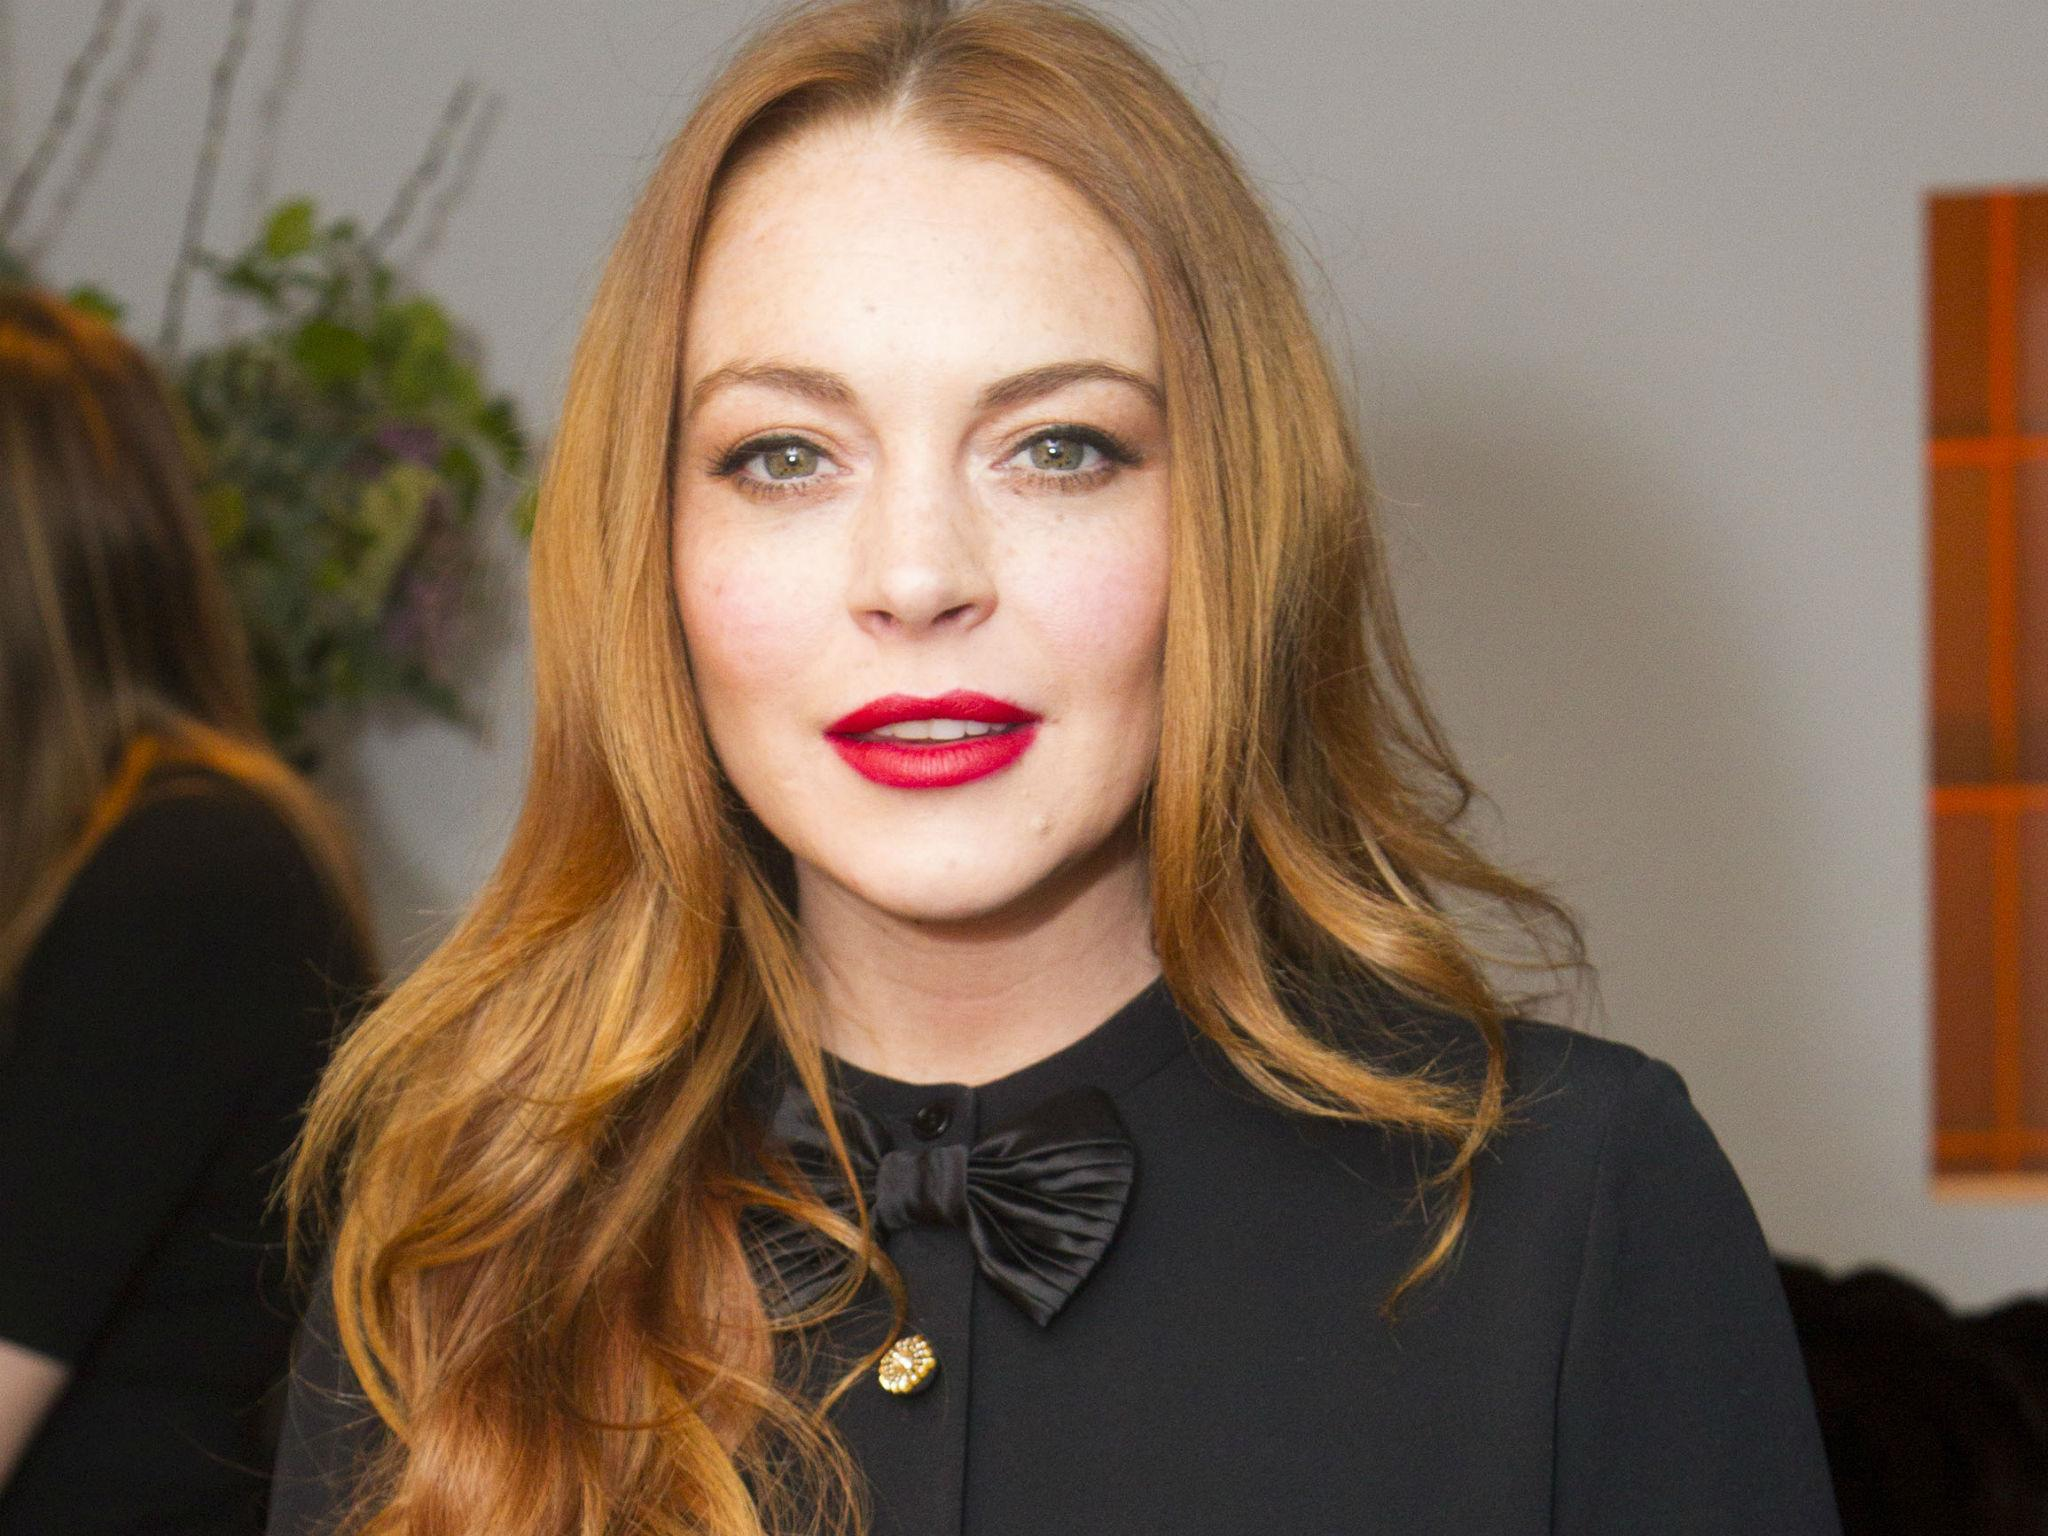 Lindsay Lohan Is Out There on the Shores of Thailand in aBurkini recommendations